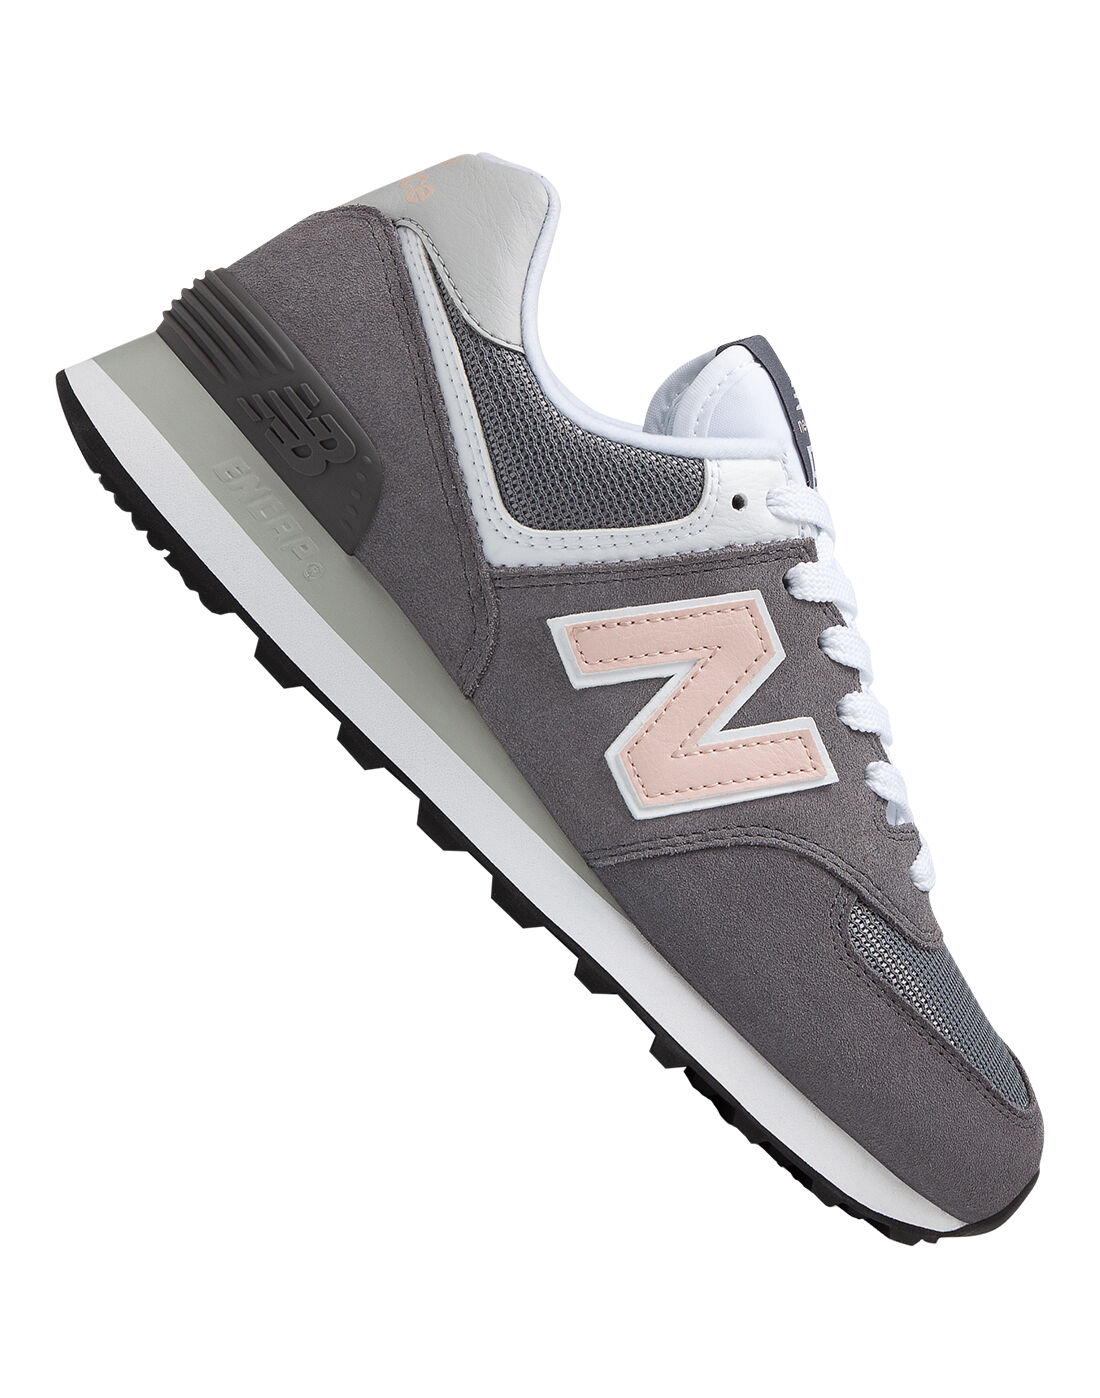 New Balance 574 Trainers In Grey And Pink